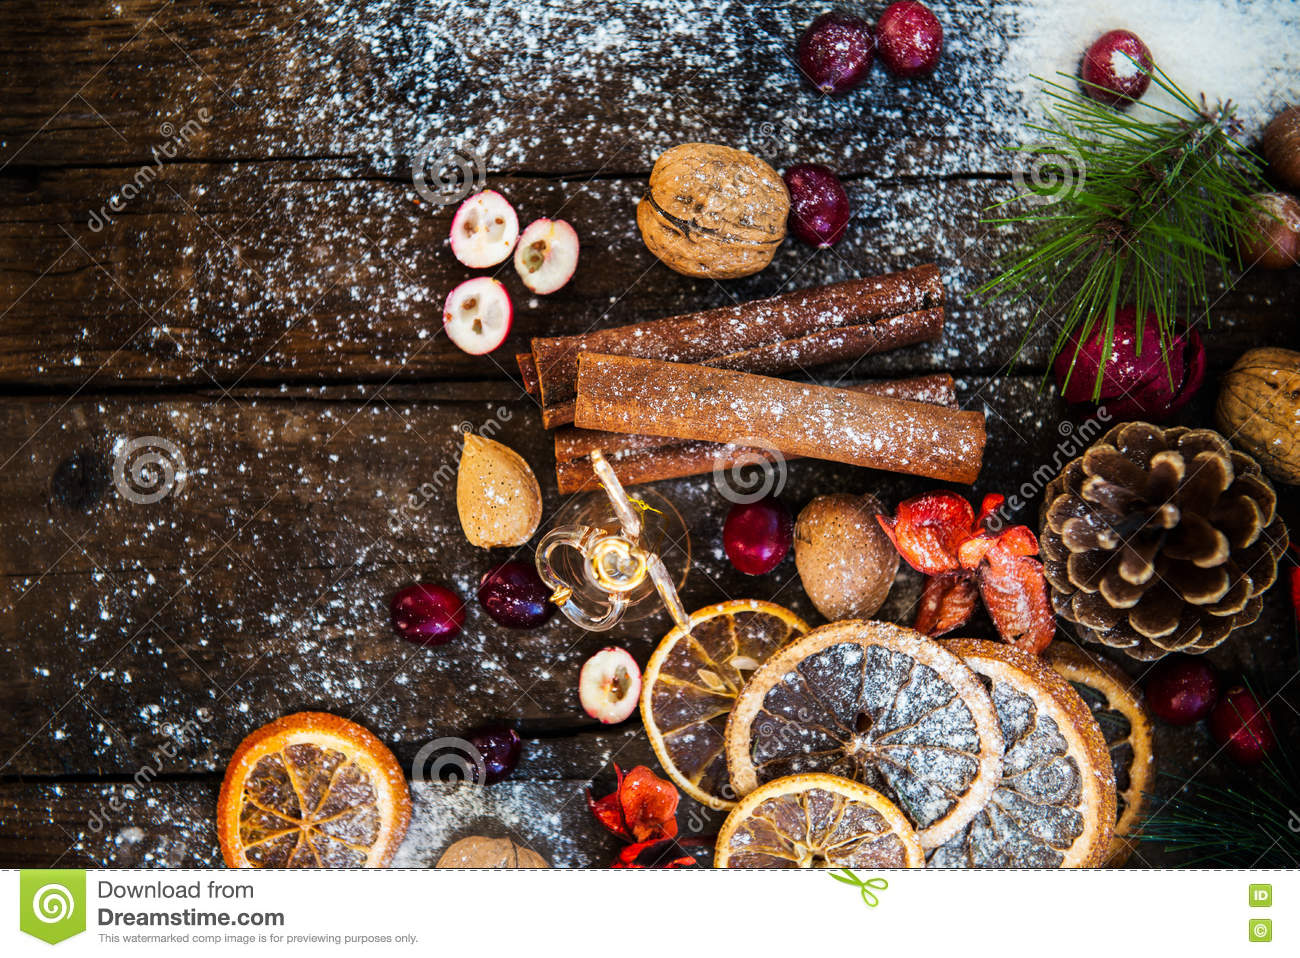 Download Xmas Symbols Such As Snow, Nuts, And Berries Stock Image - Image of spirit, cold: 80904927